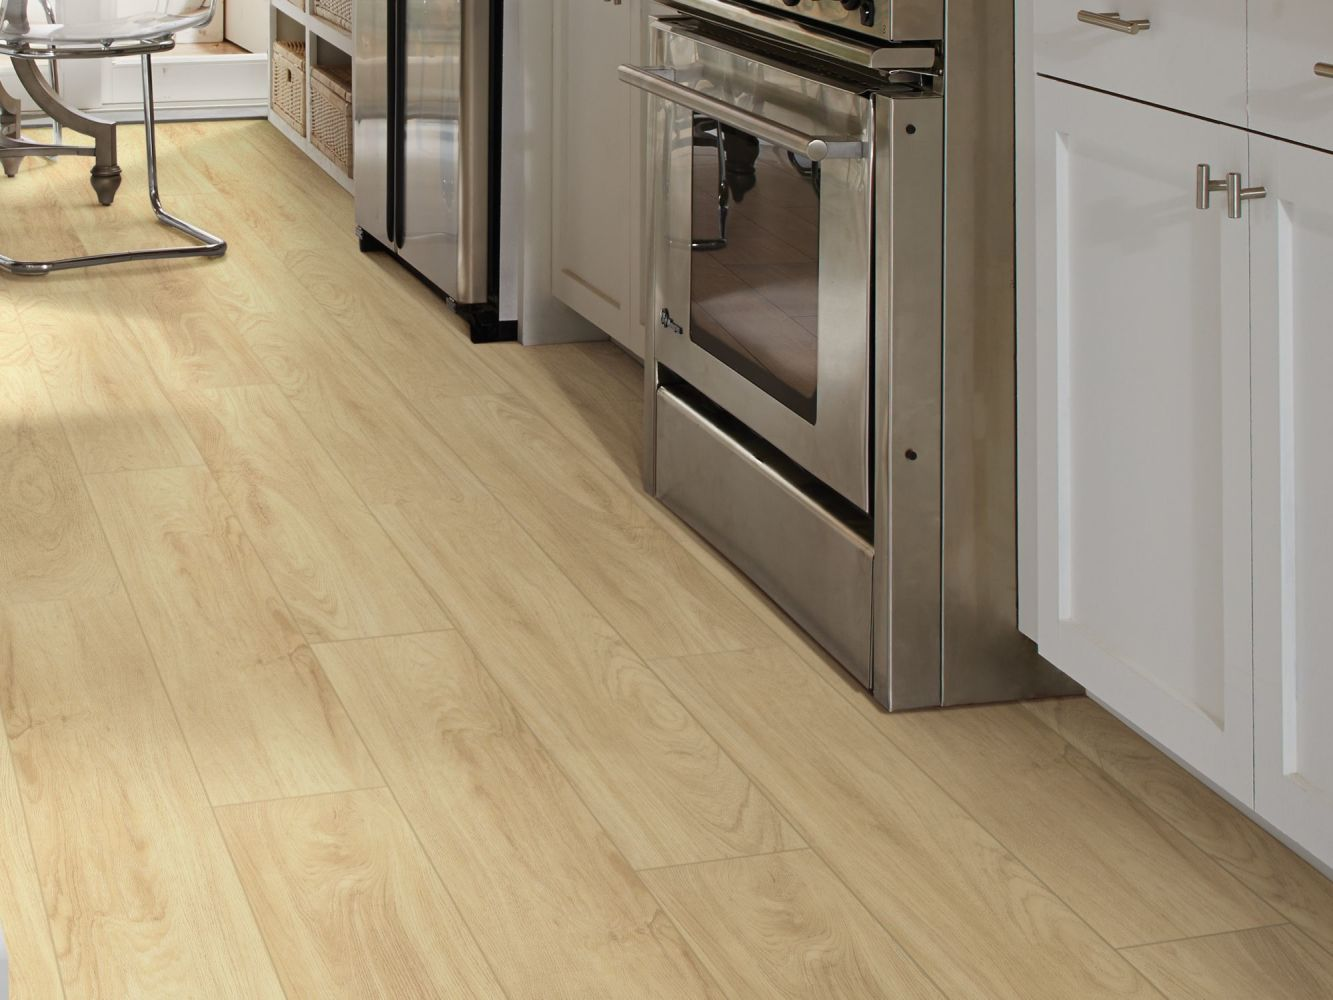 Shaw Floors Resilient Residential Pantheon HD Plus Como 00299_2001V